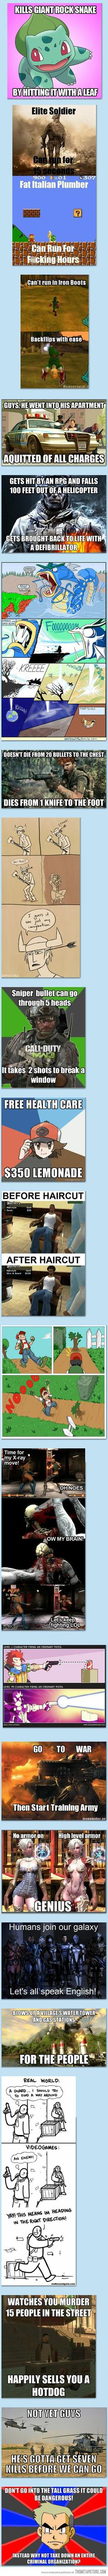 Video Game Logic: I don't understand 70% of it but its still funny